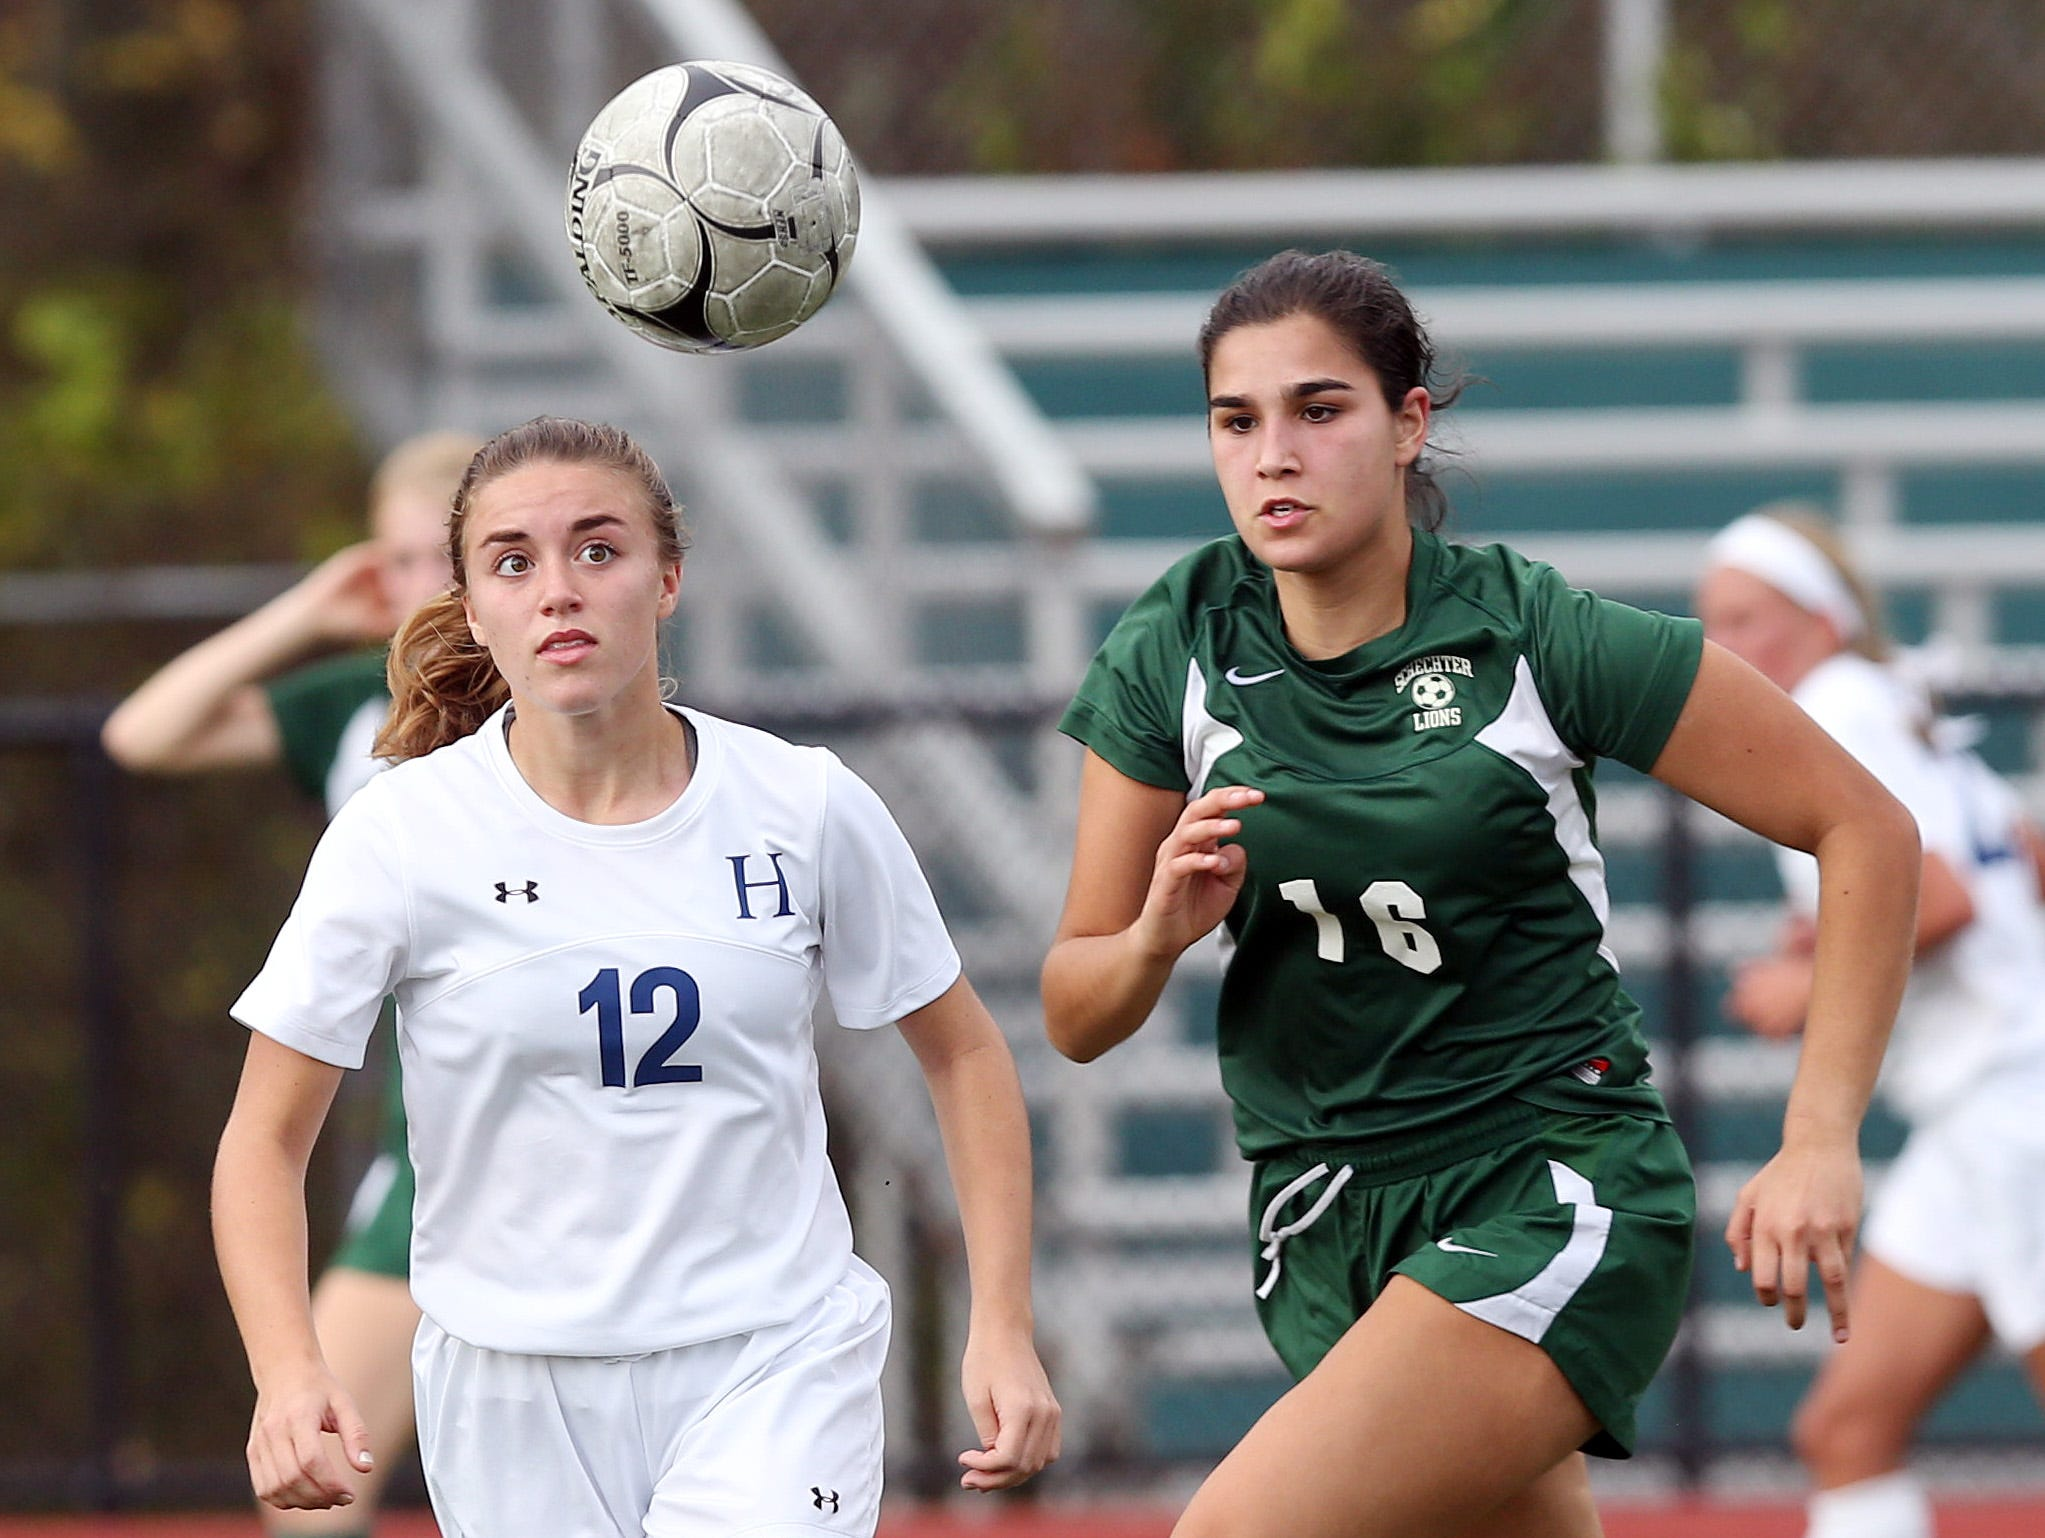 From left, Haldane's Missy Lisikatos (12) and Schechter's Eden Gilbert (16) battle for ball control during the girls soccer Section 1 Class C championship game at Yorktown High School Oct. 30, 2016. Haldane won the game 3-0.